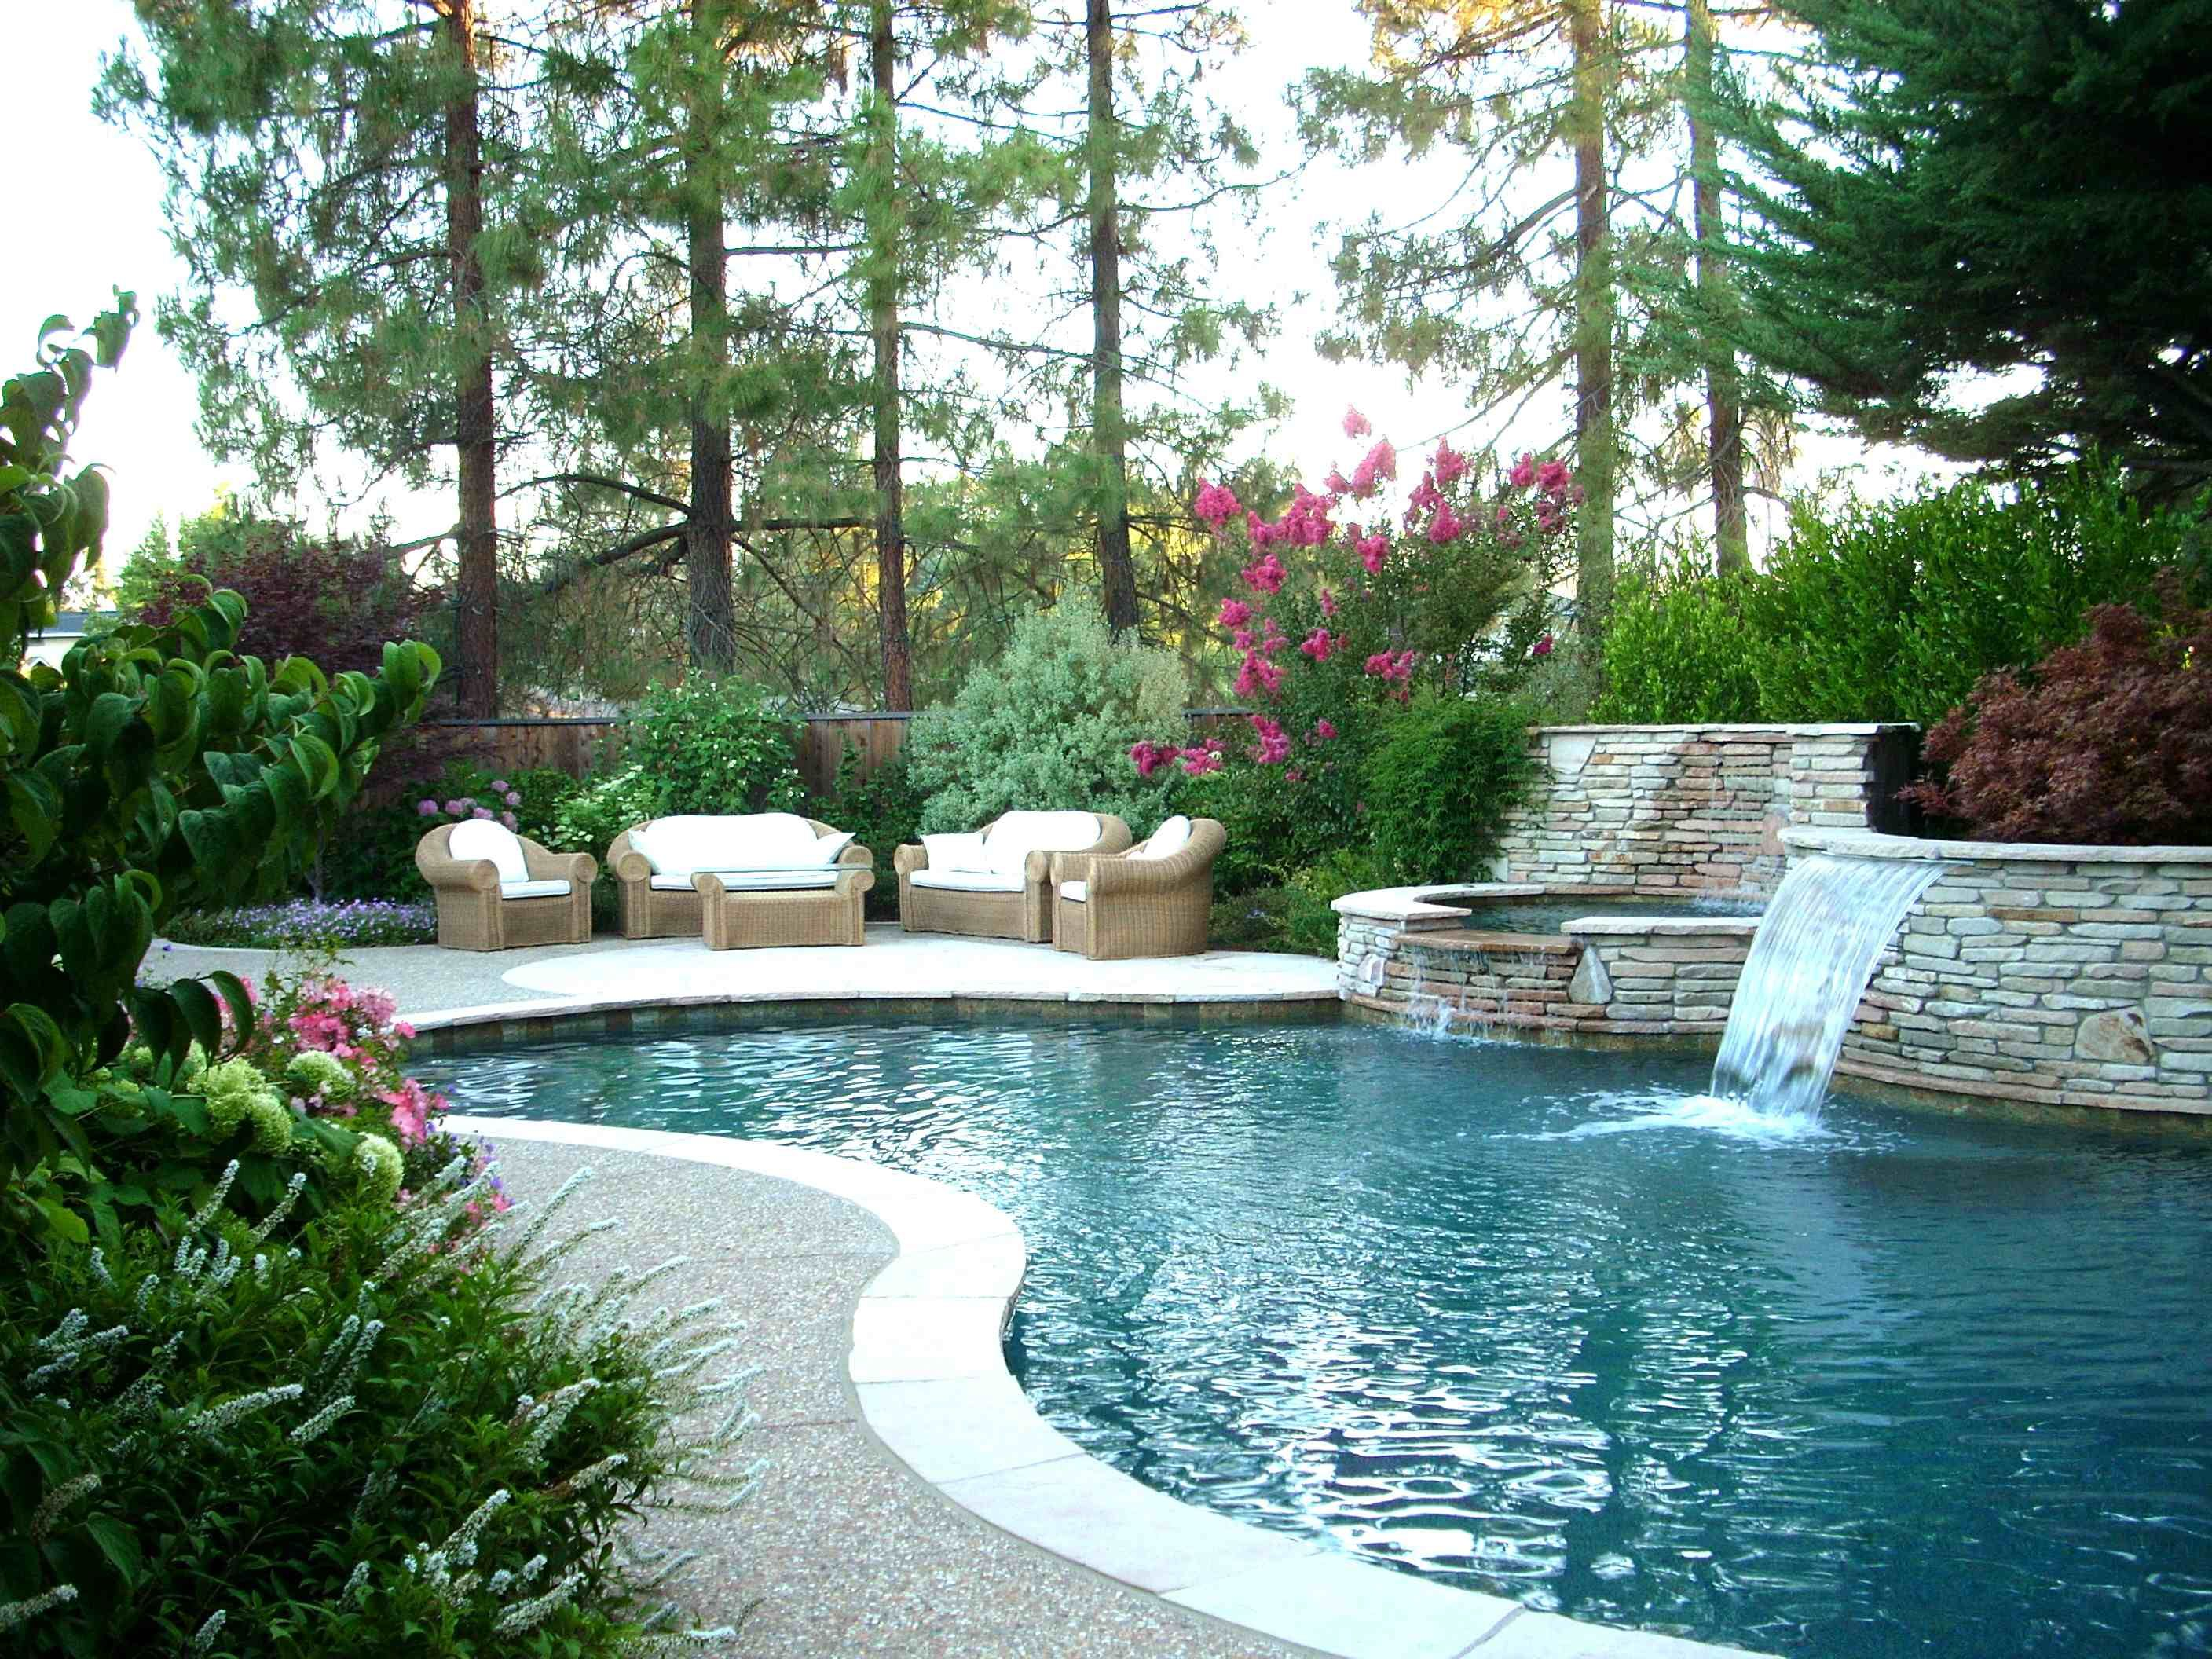 Landscaped pool pictures landscape design ideas for for Pool landscaping ideas